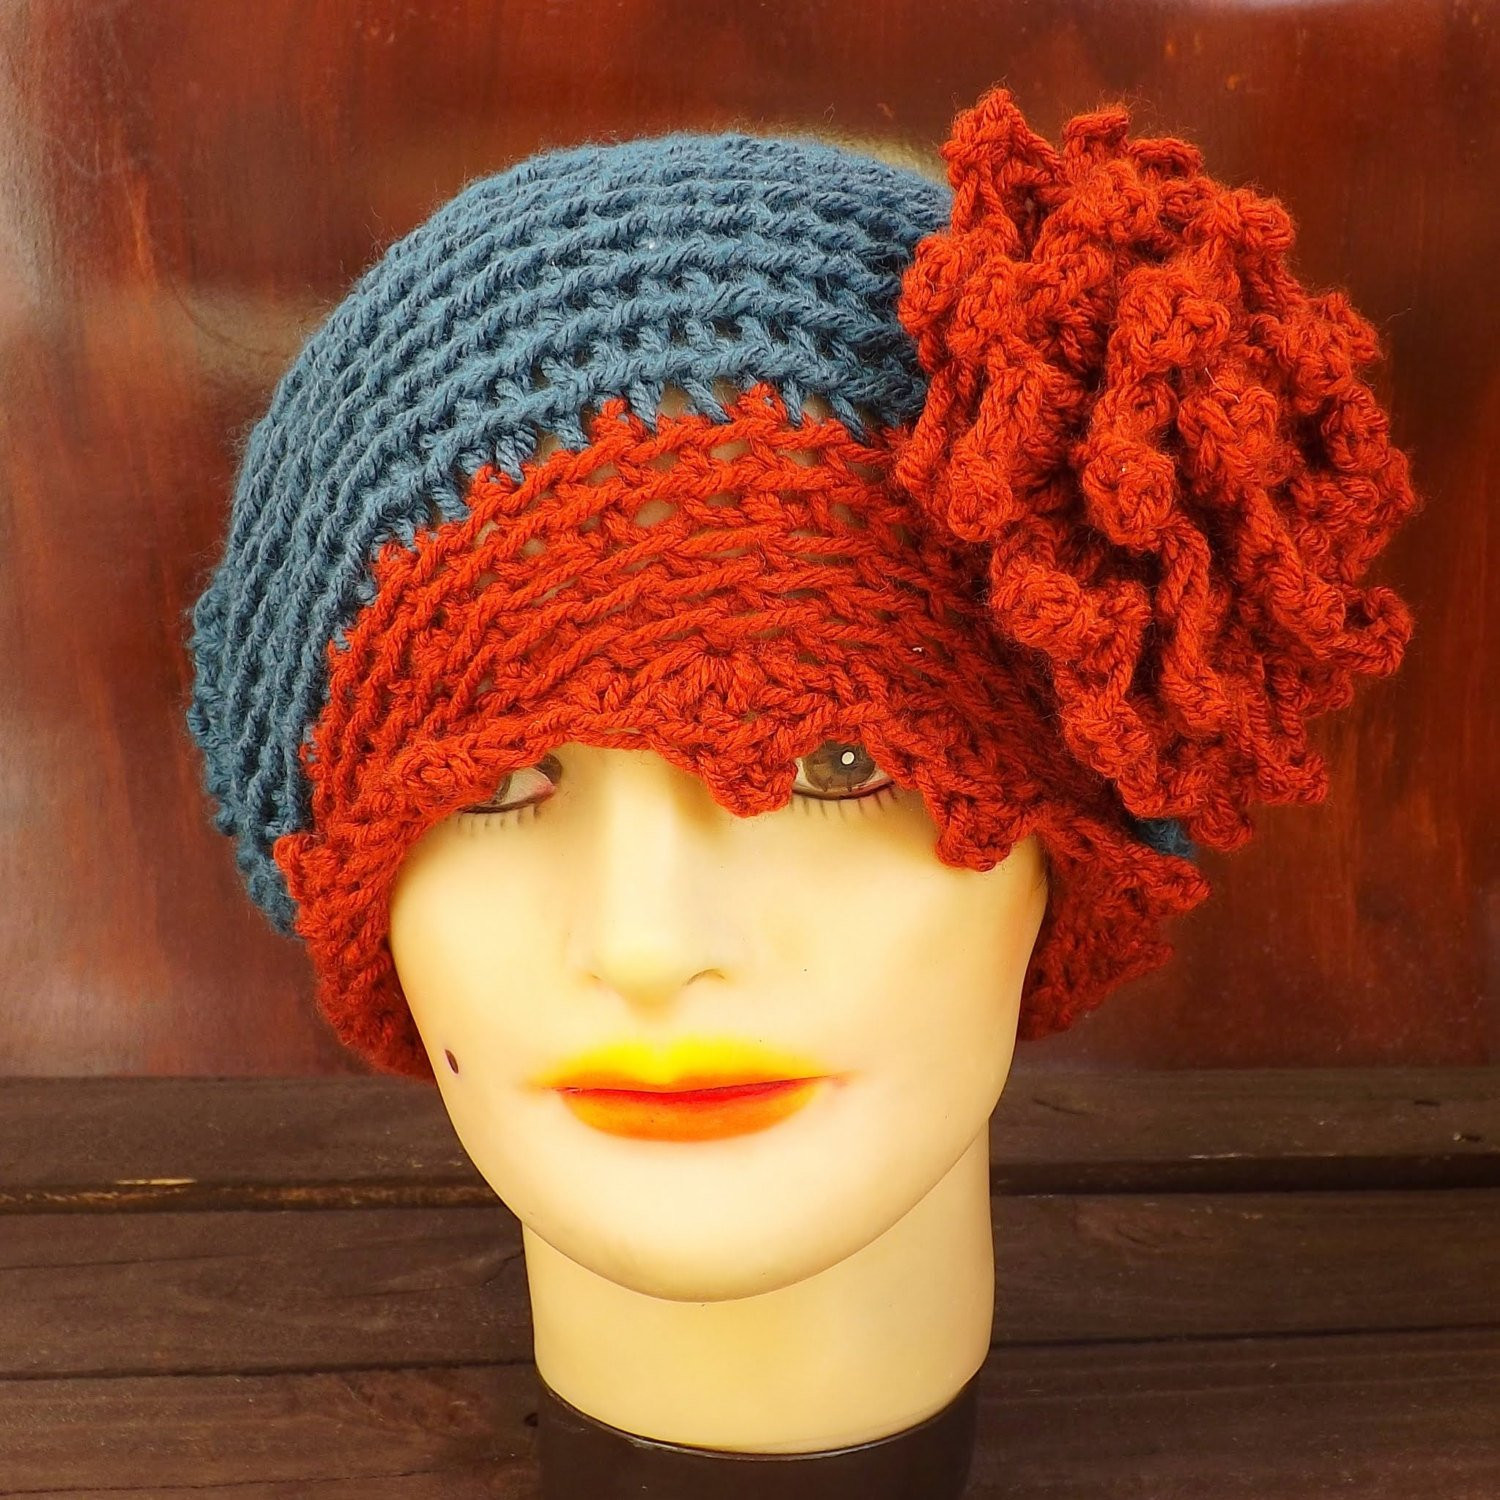 Inspirational Unique Etsy Crochet and Knit Hats and Patterns Blog by Unique Crochet Patterns Of Superb 47 Images Unique Crochet Patterns